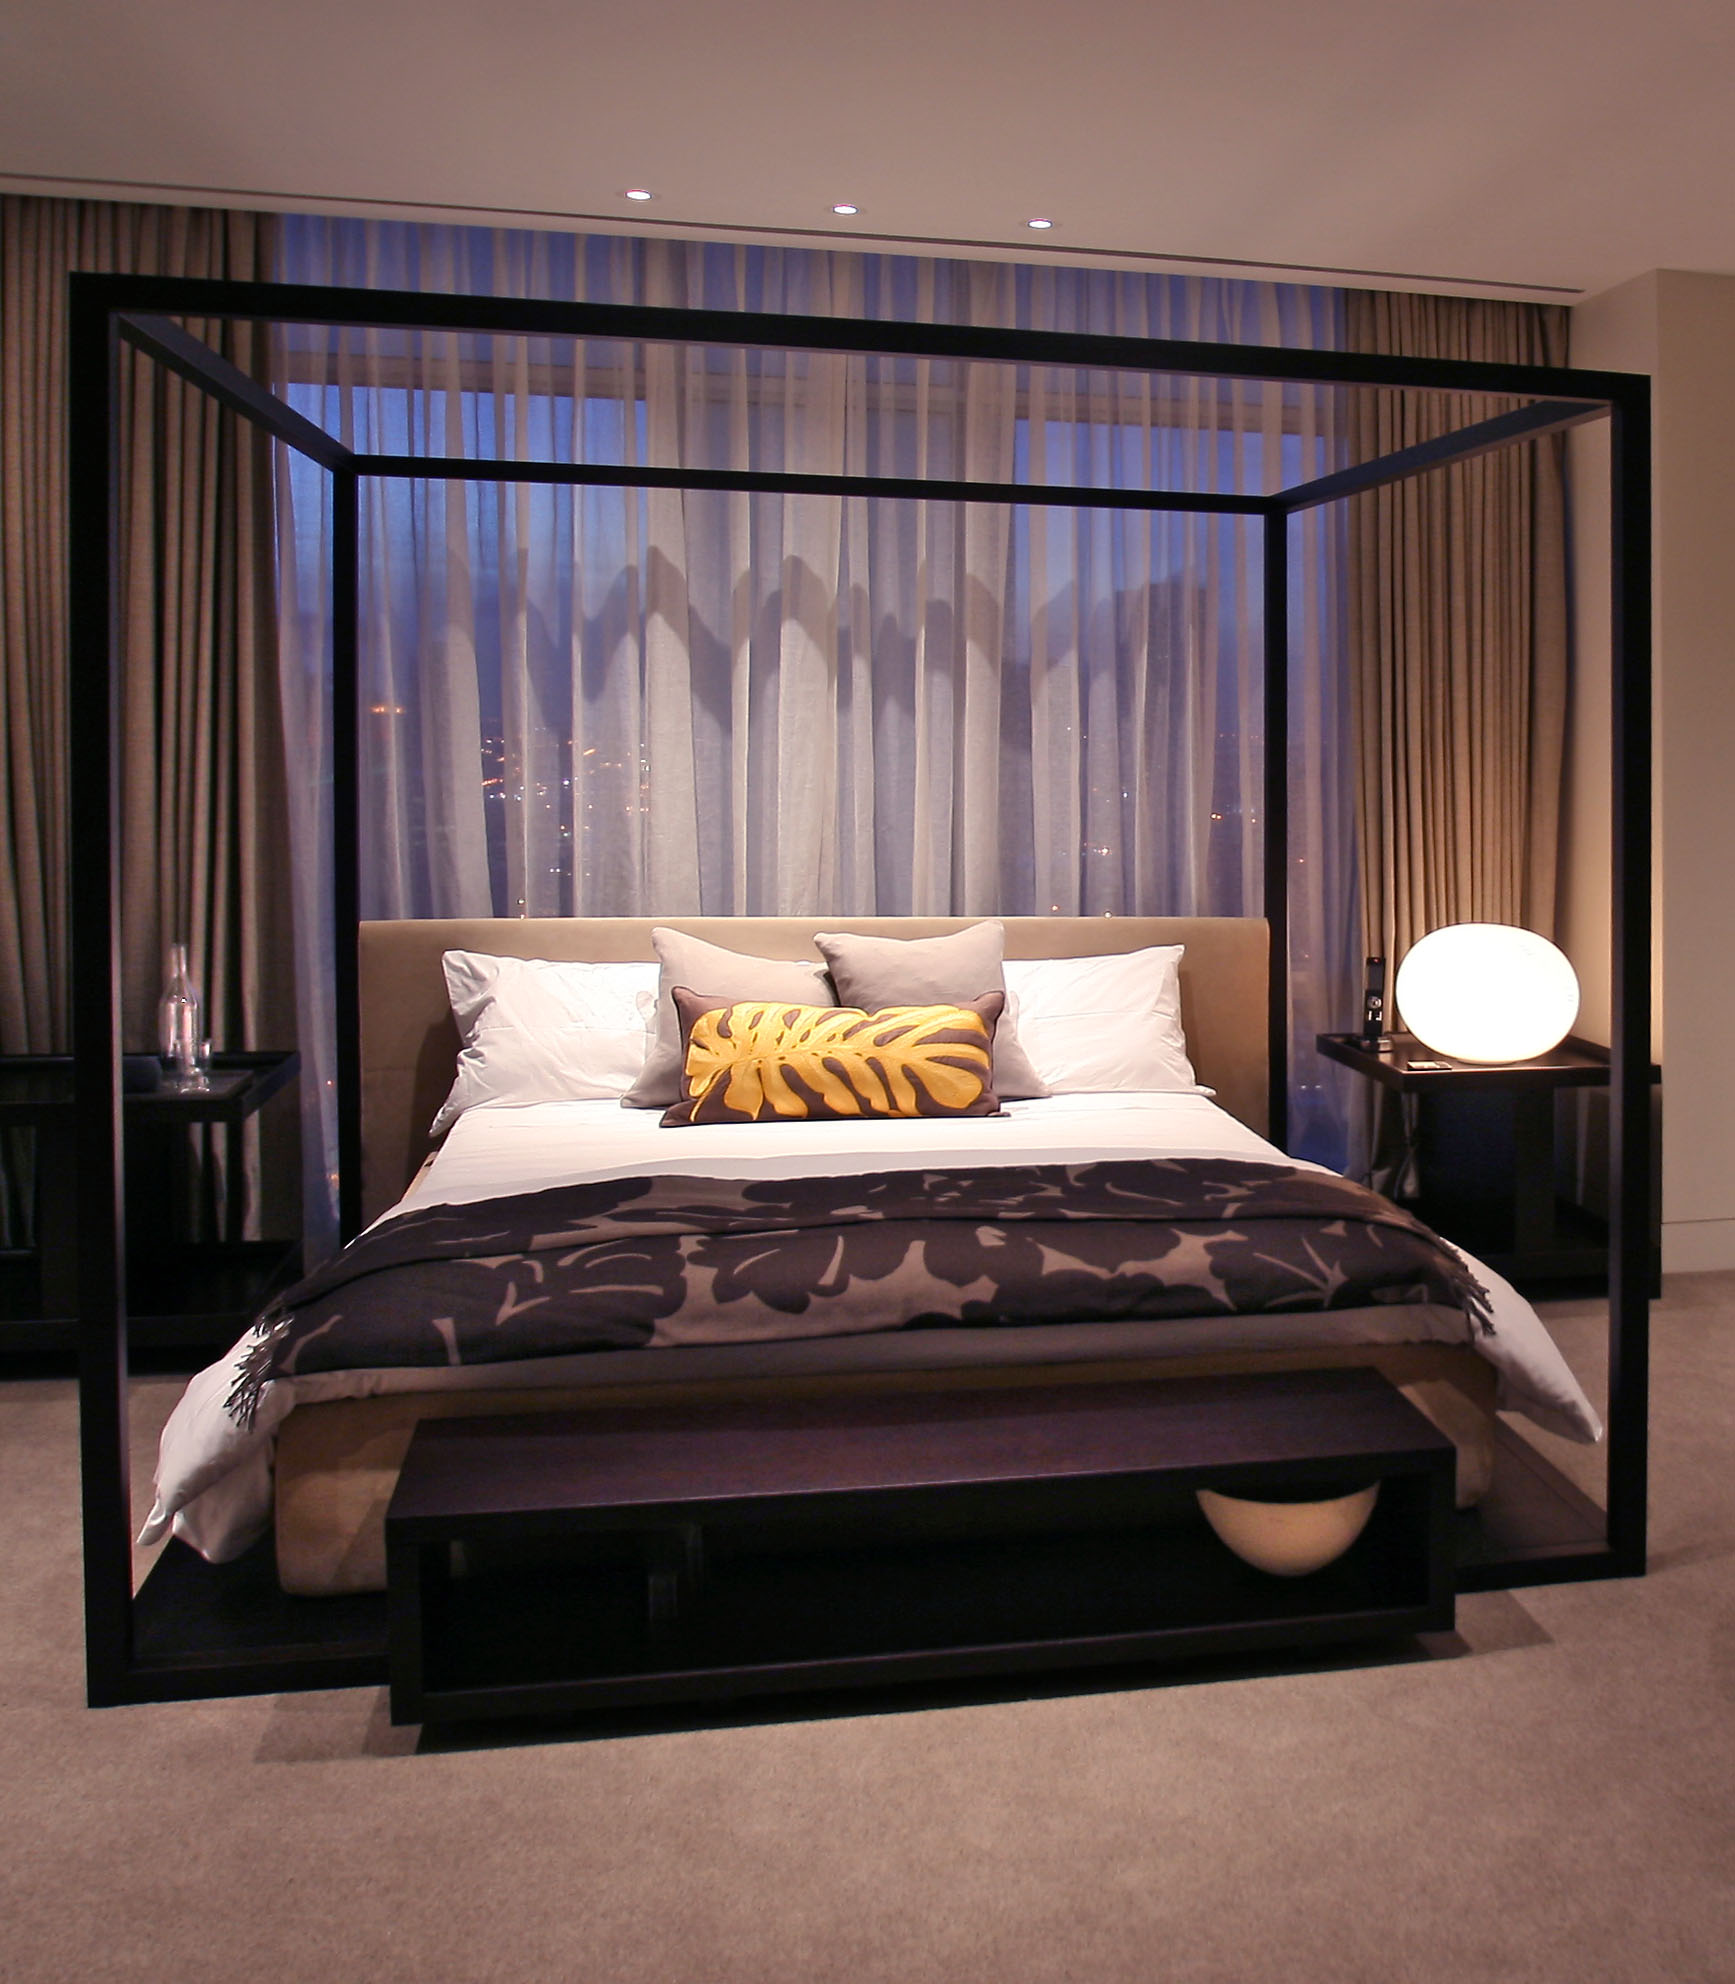 Stupendous Bedroom Lighting A Q A With Lighting Designer Anne Kustner Home Interior And Landscaping Eliaenasavecom